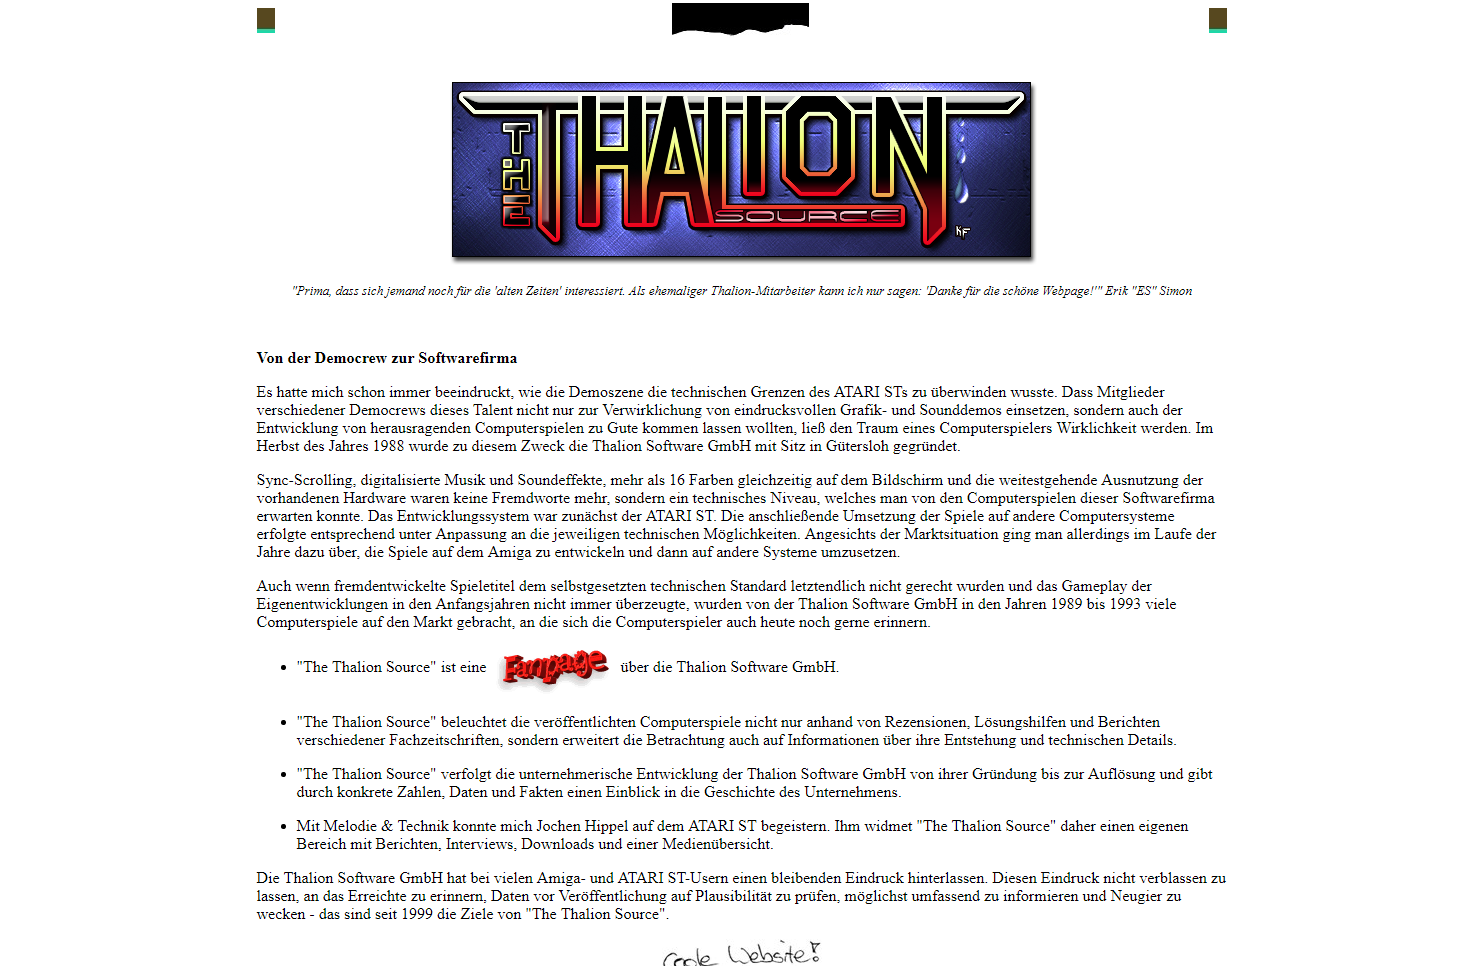 Screenshot of website The Thalion Source